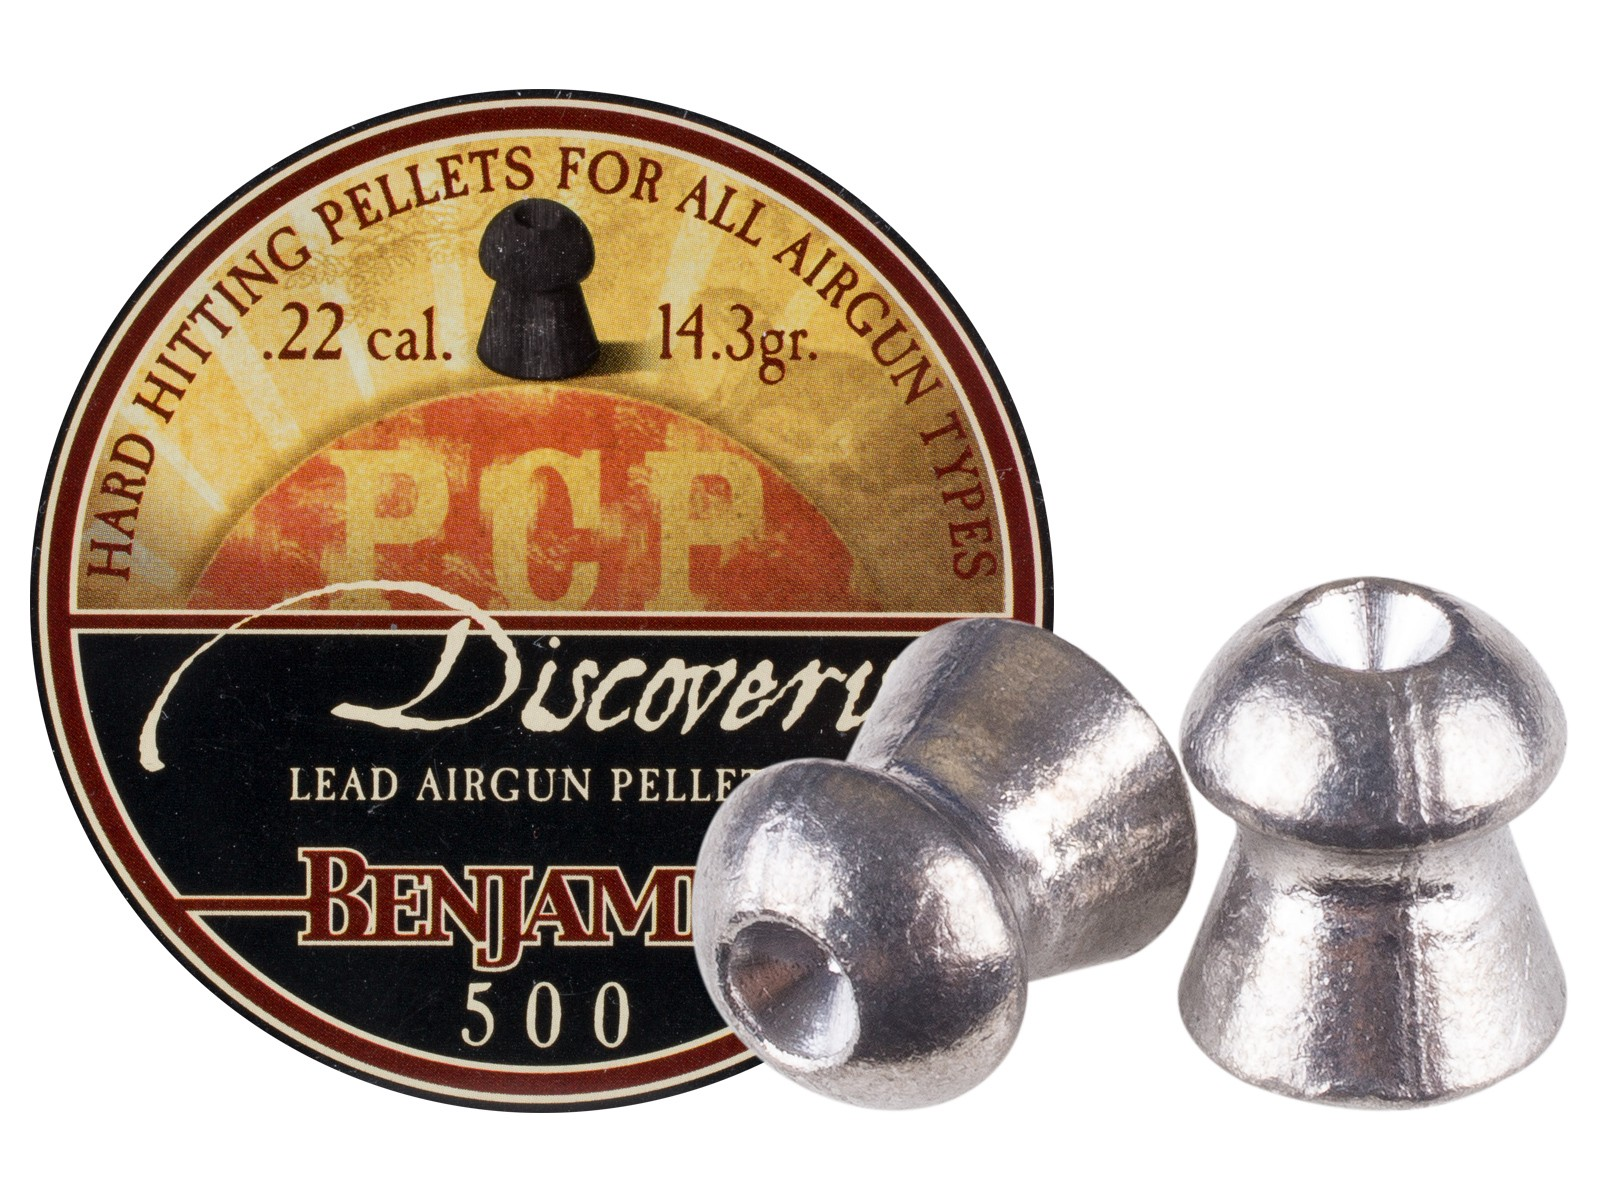 Benjamin Discovery .22 Cal, 14.3 Grains, Hollowpoint, 500ct